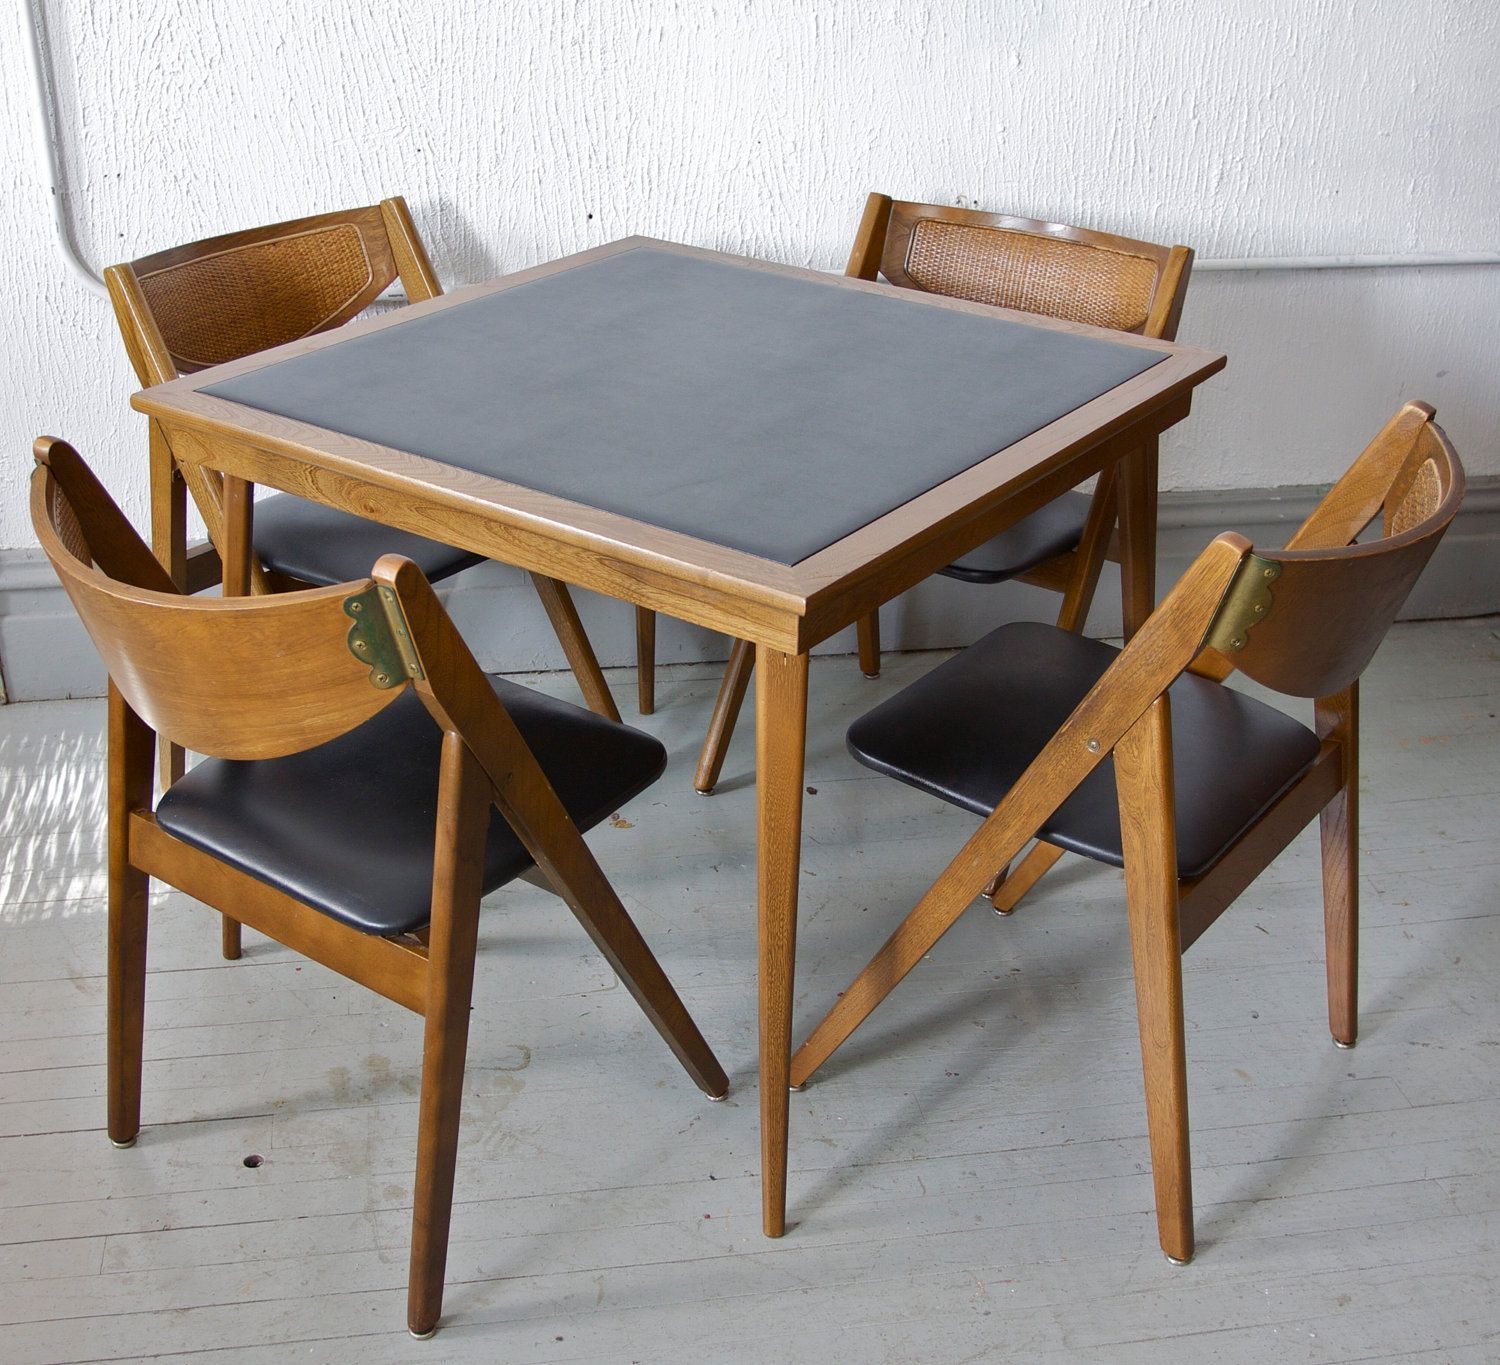 Merveilleux SOLD Vintage Mid Century Modern Stakmore Folding Chairs And Card Table Via  Etsy * Chairs Have Rattan Backs, Black Vinyl Seats, And Brass Hardware With  Great ...